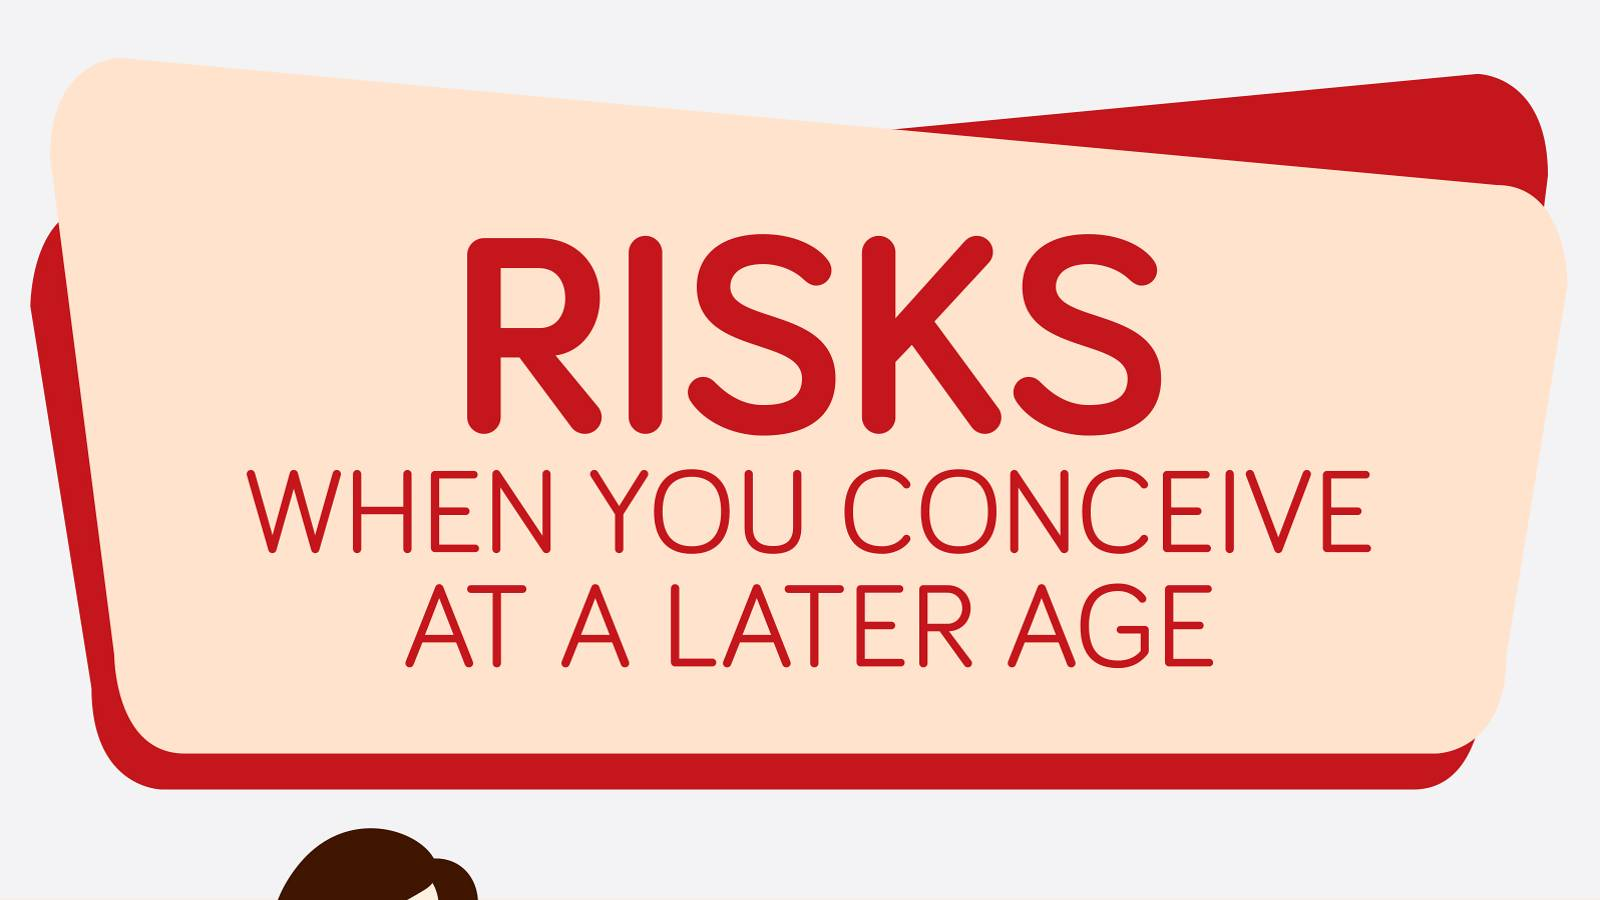 Conceiving-Risks-linked-to-conceiving-later-[Infographic]_01